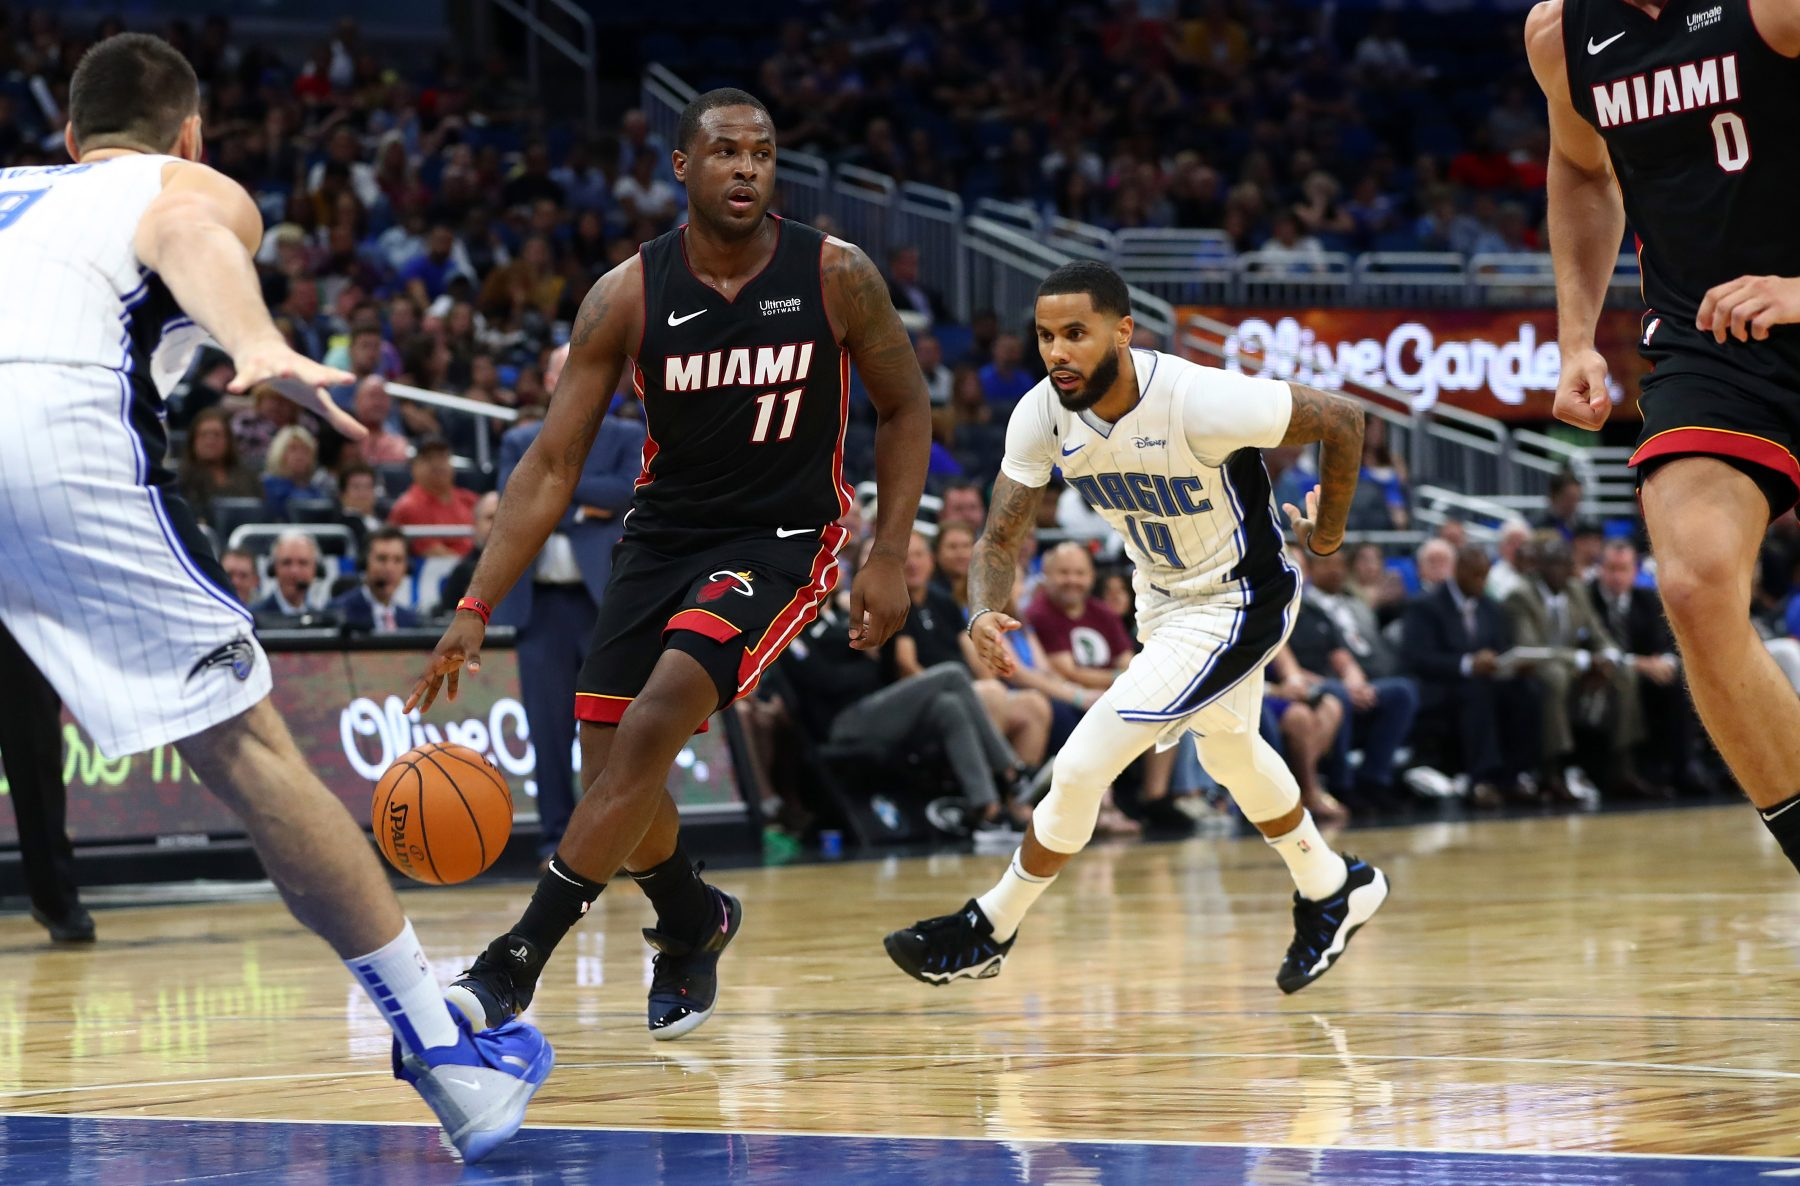 Heat suspend Dion Waiters for season opener over conduct